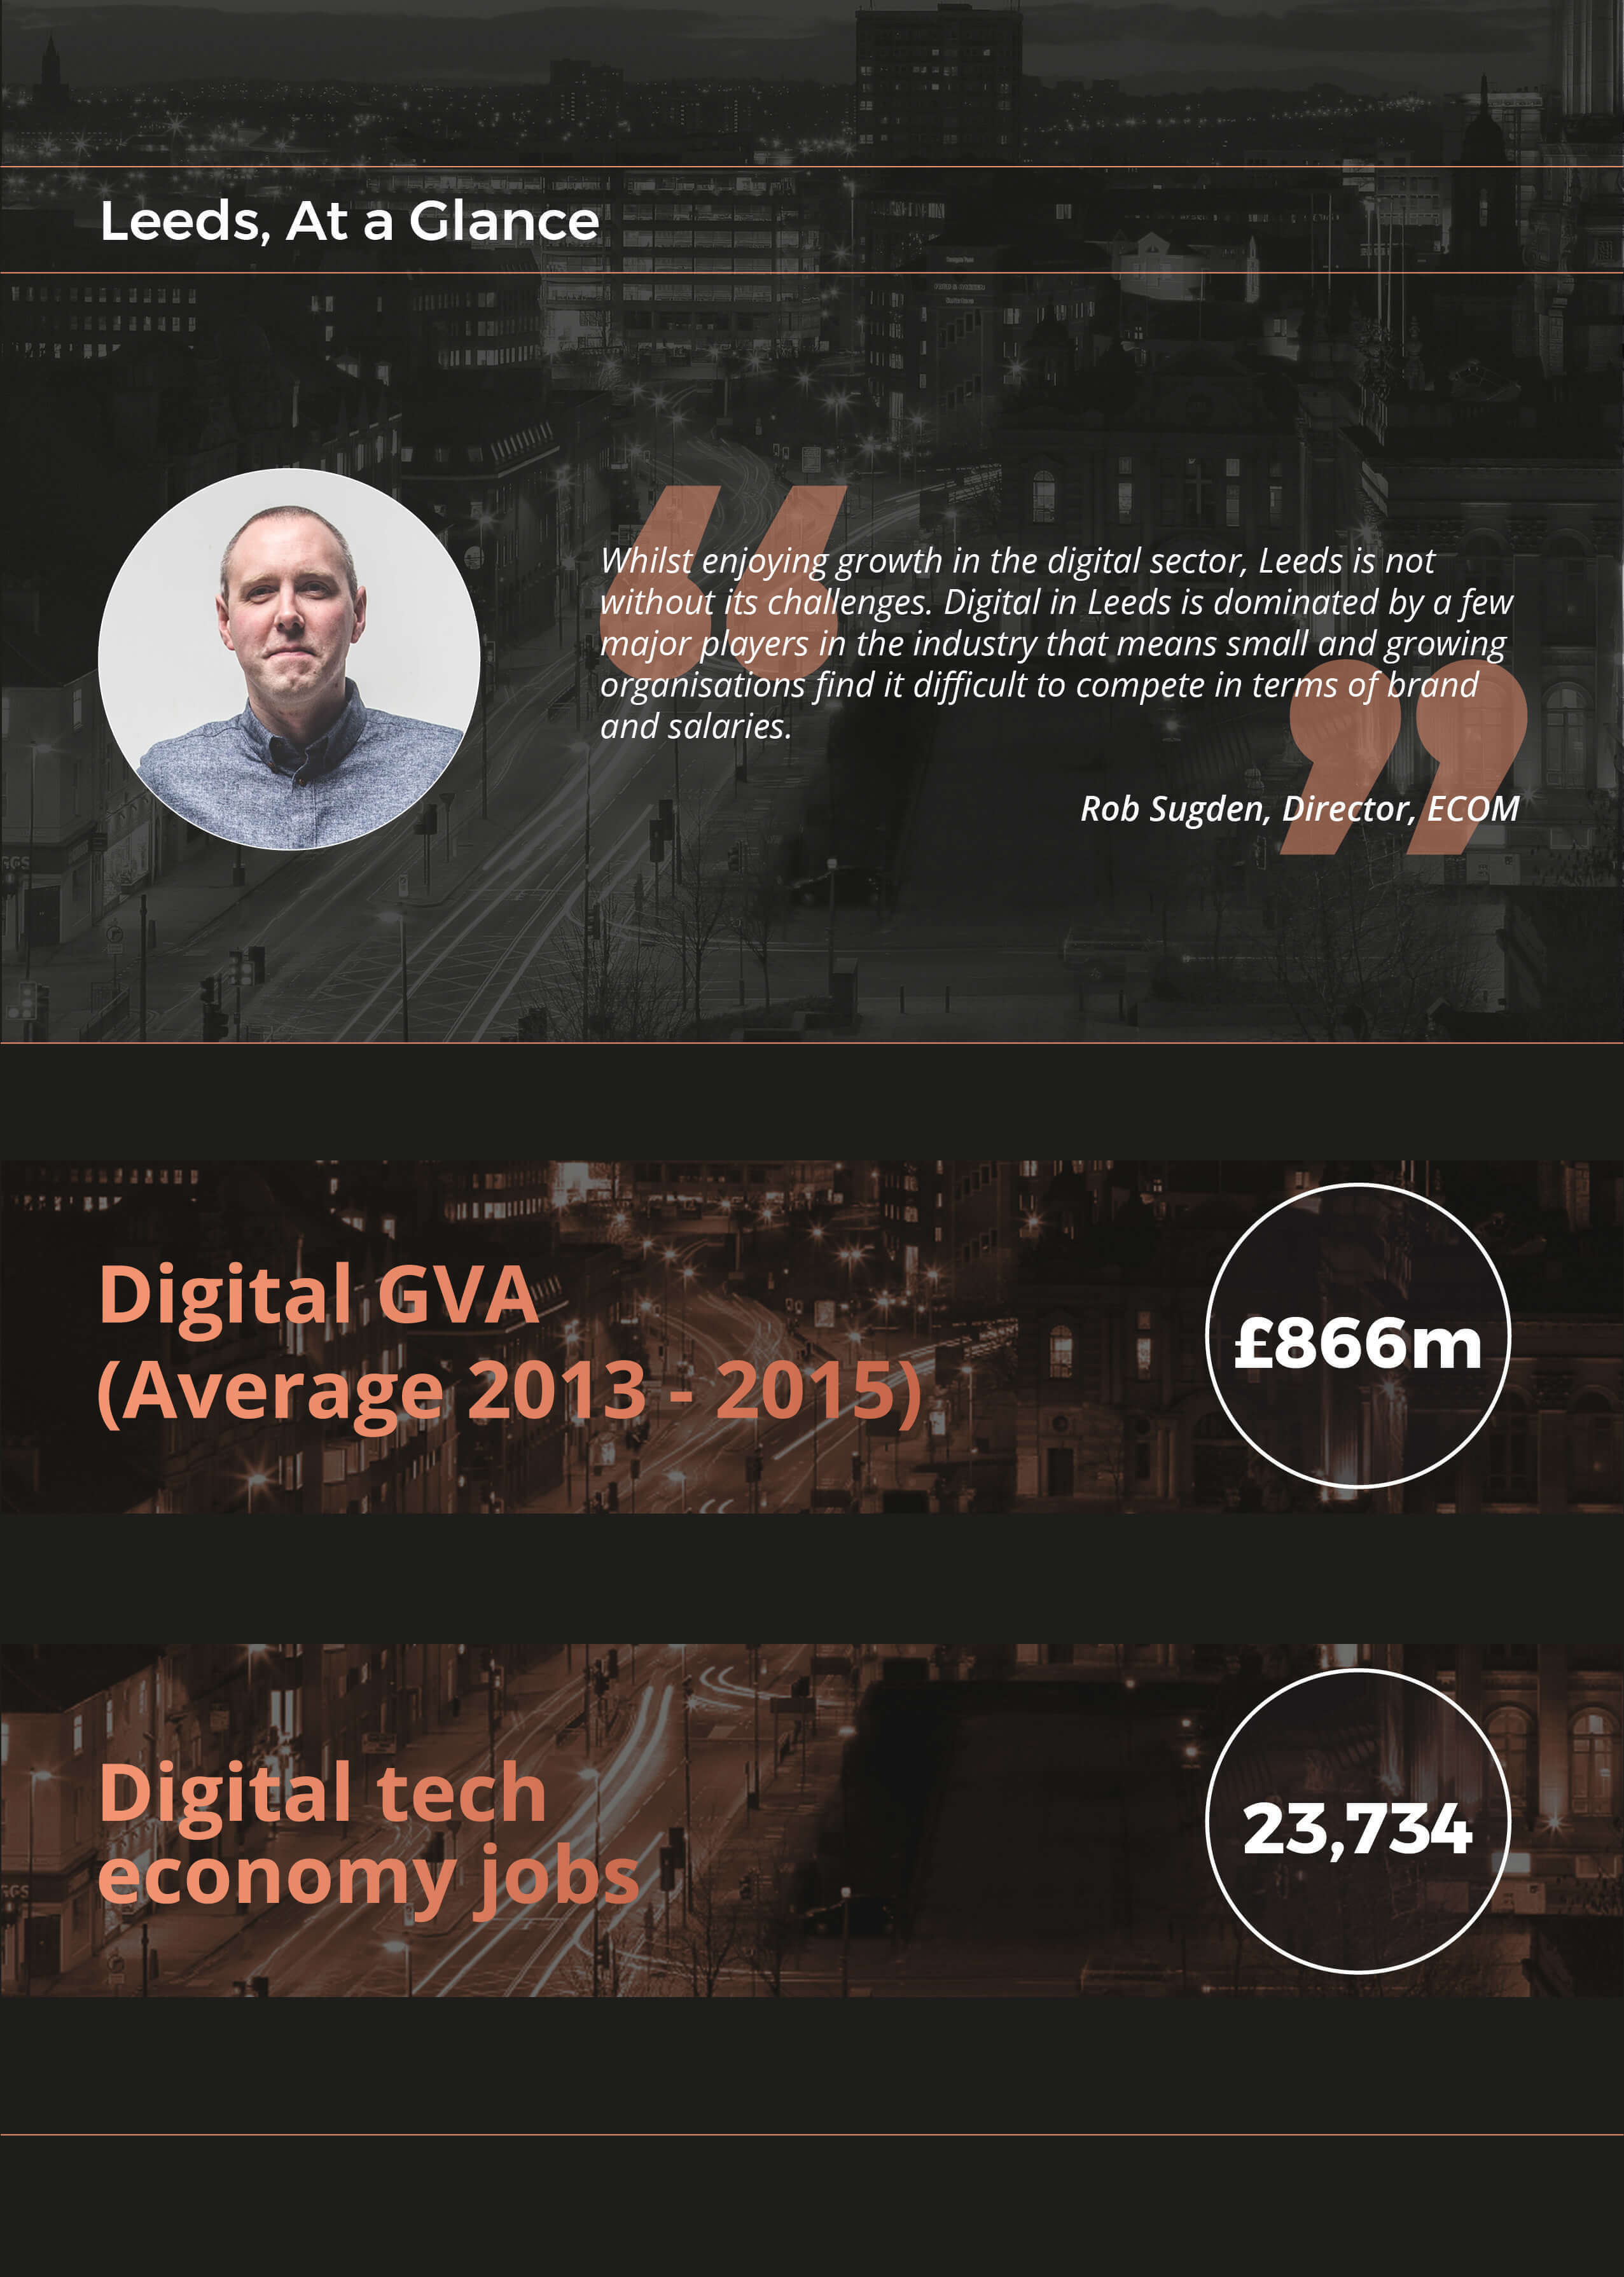 Leeds Digital Economy In Numbers Infographic - At a Glance